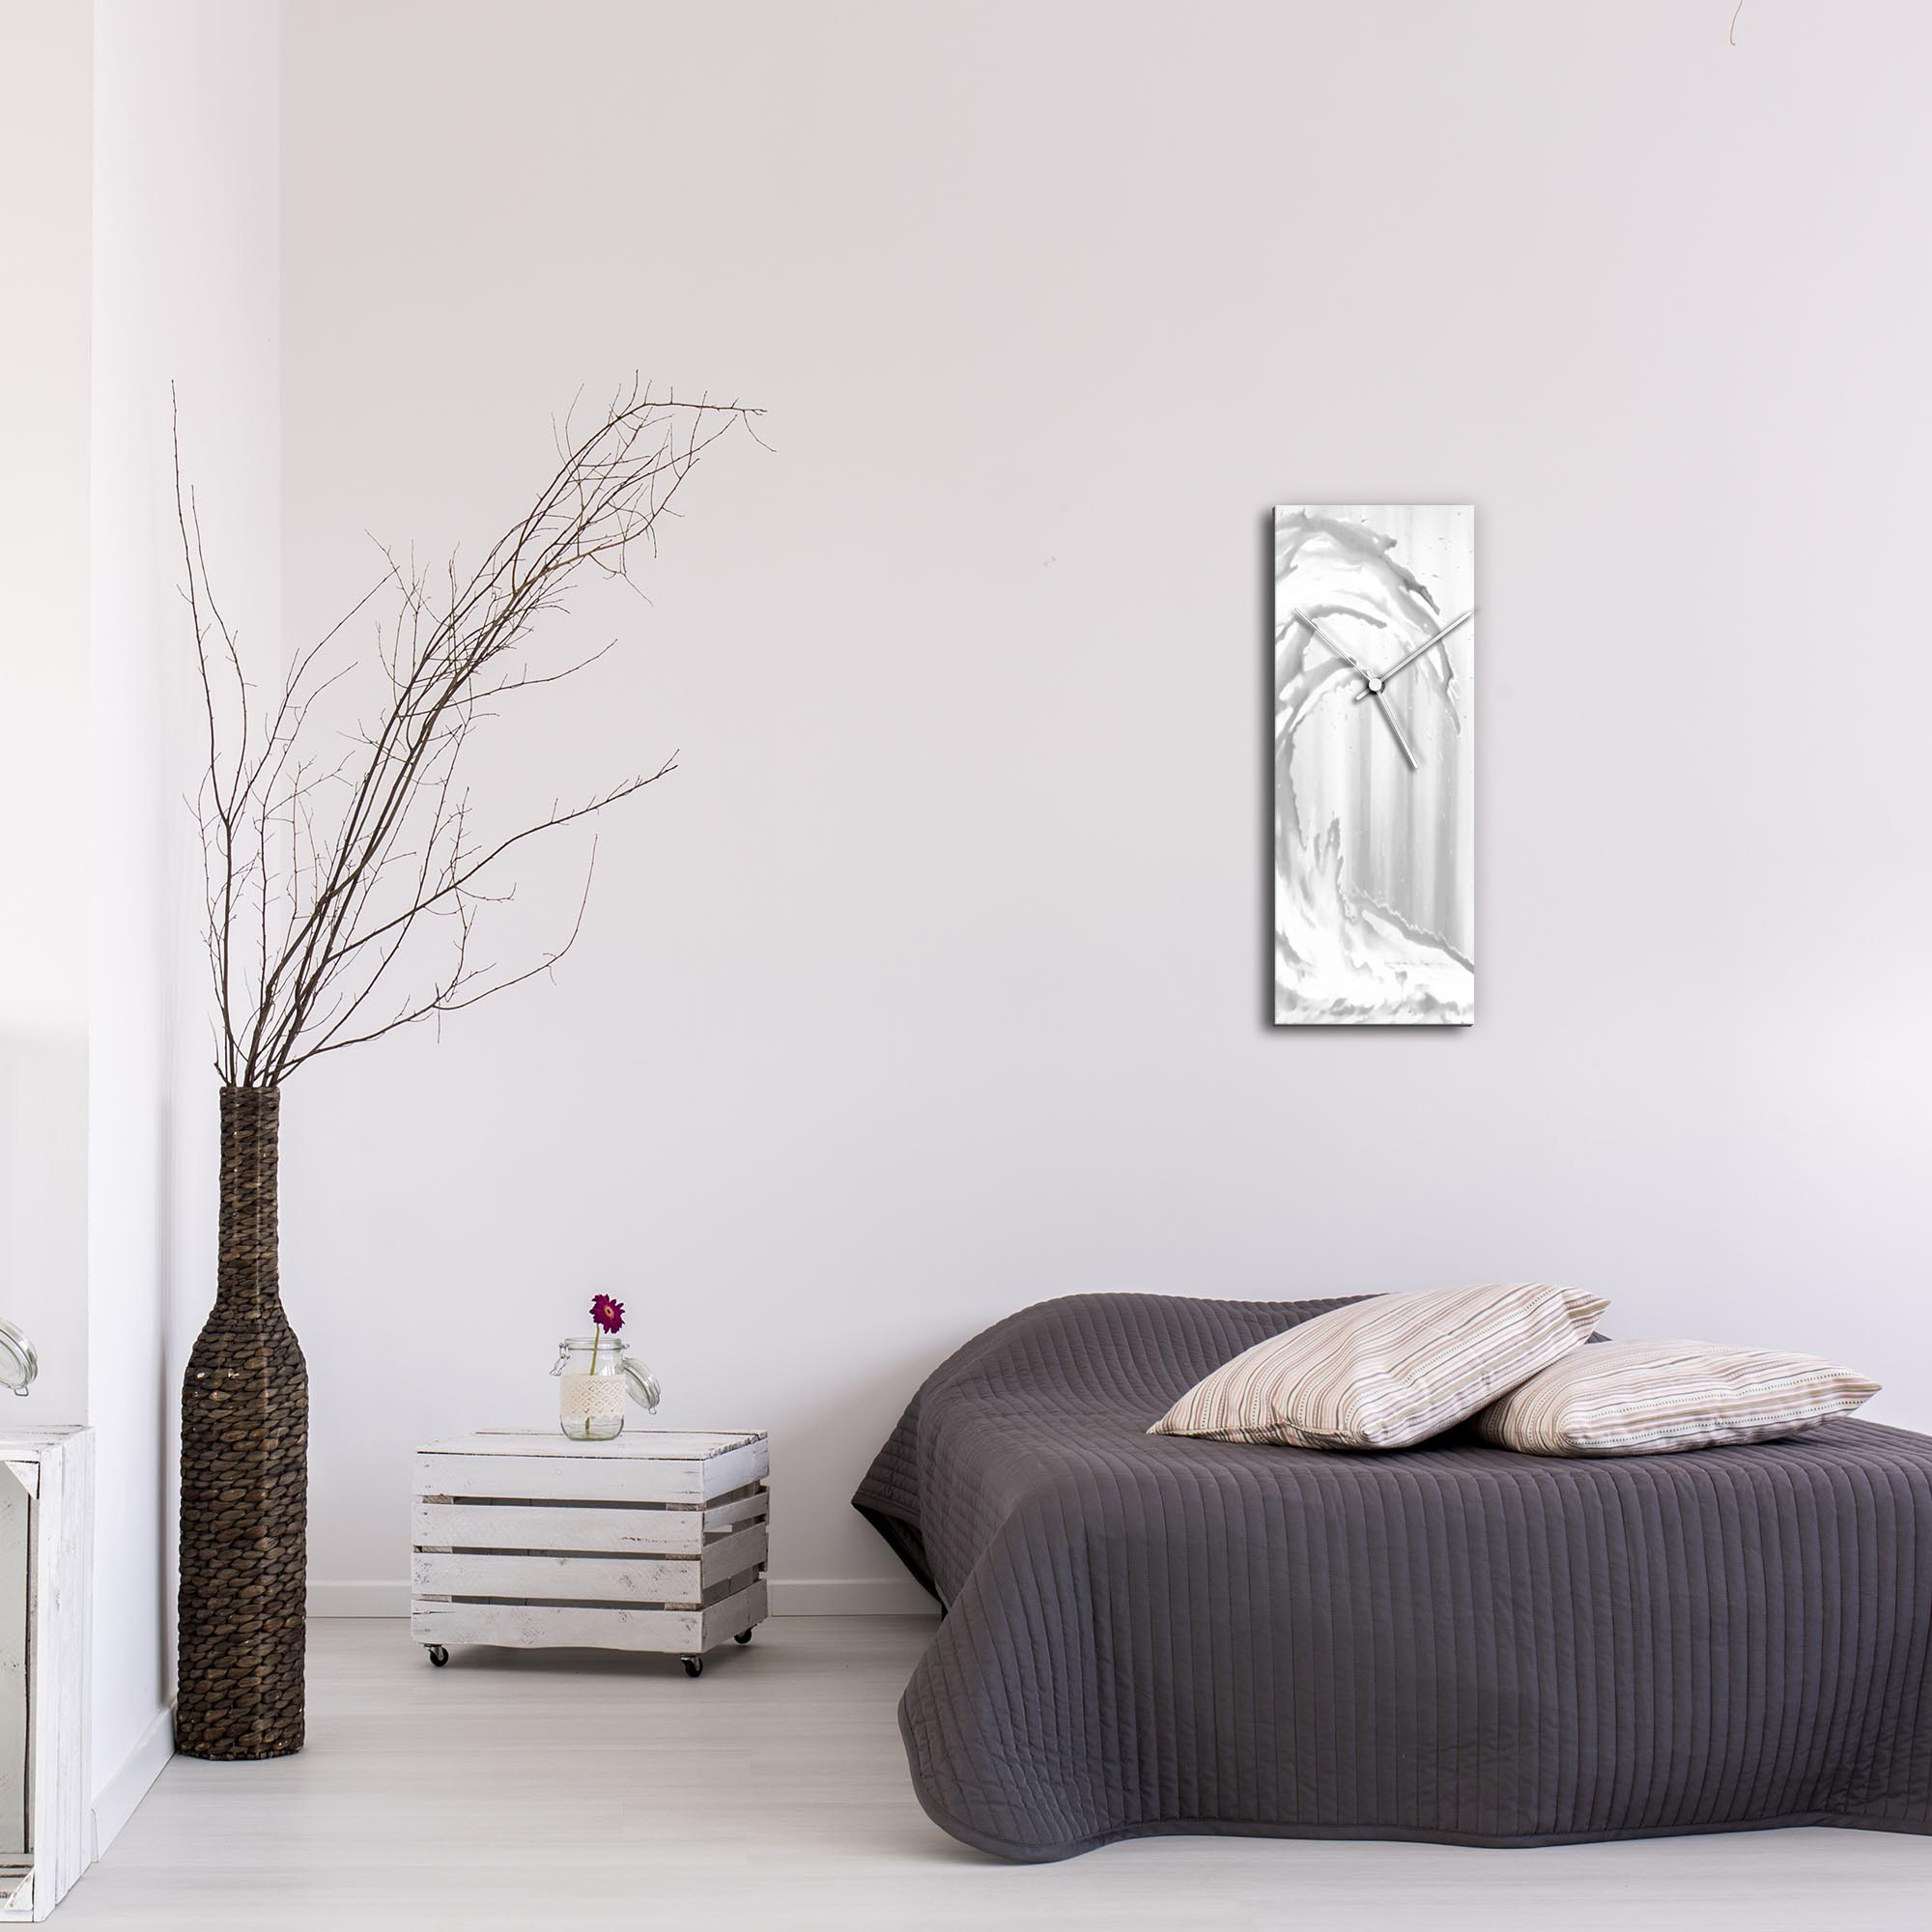 White Wave v1 Clock Large by Mendo Vasilevski - Urban Abstract Home Decor - Lifestyle View